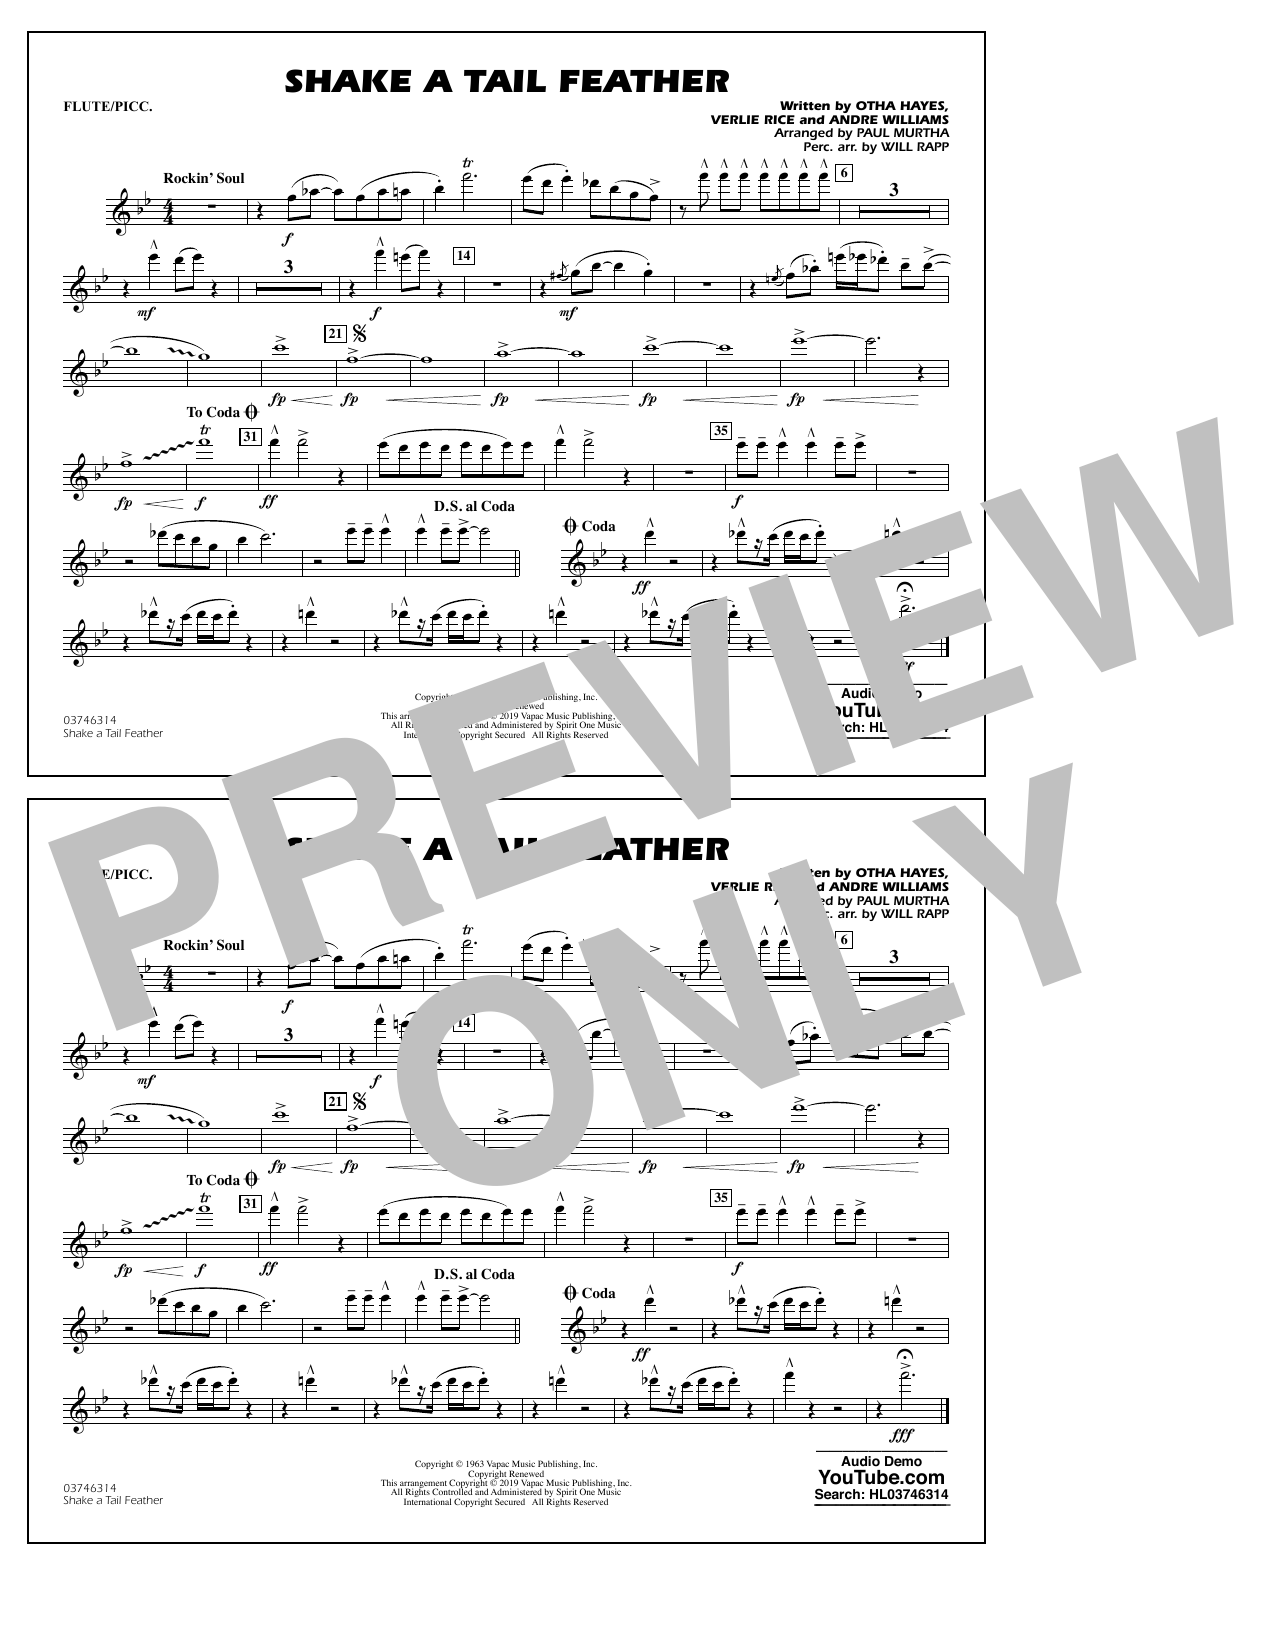 Ray Charles Shake a Tail Feather (arr. Paul Murtha) - Flute/Piccolo sheet music preview music notes and score for Marching Band including 1 page(s)